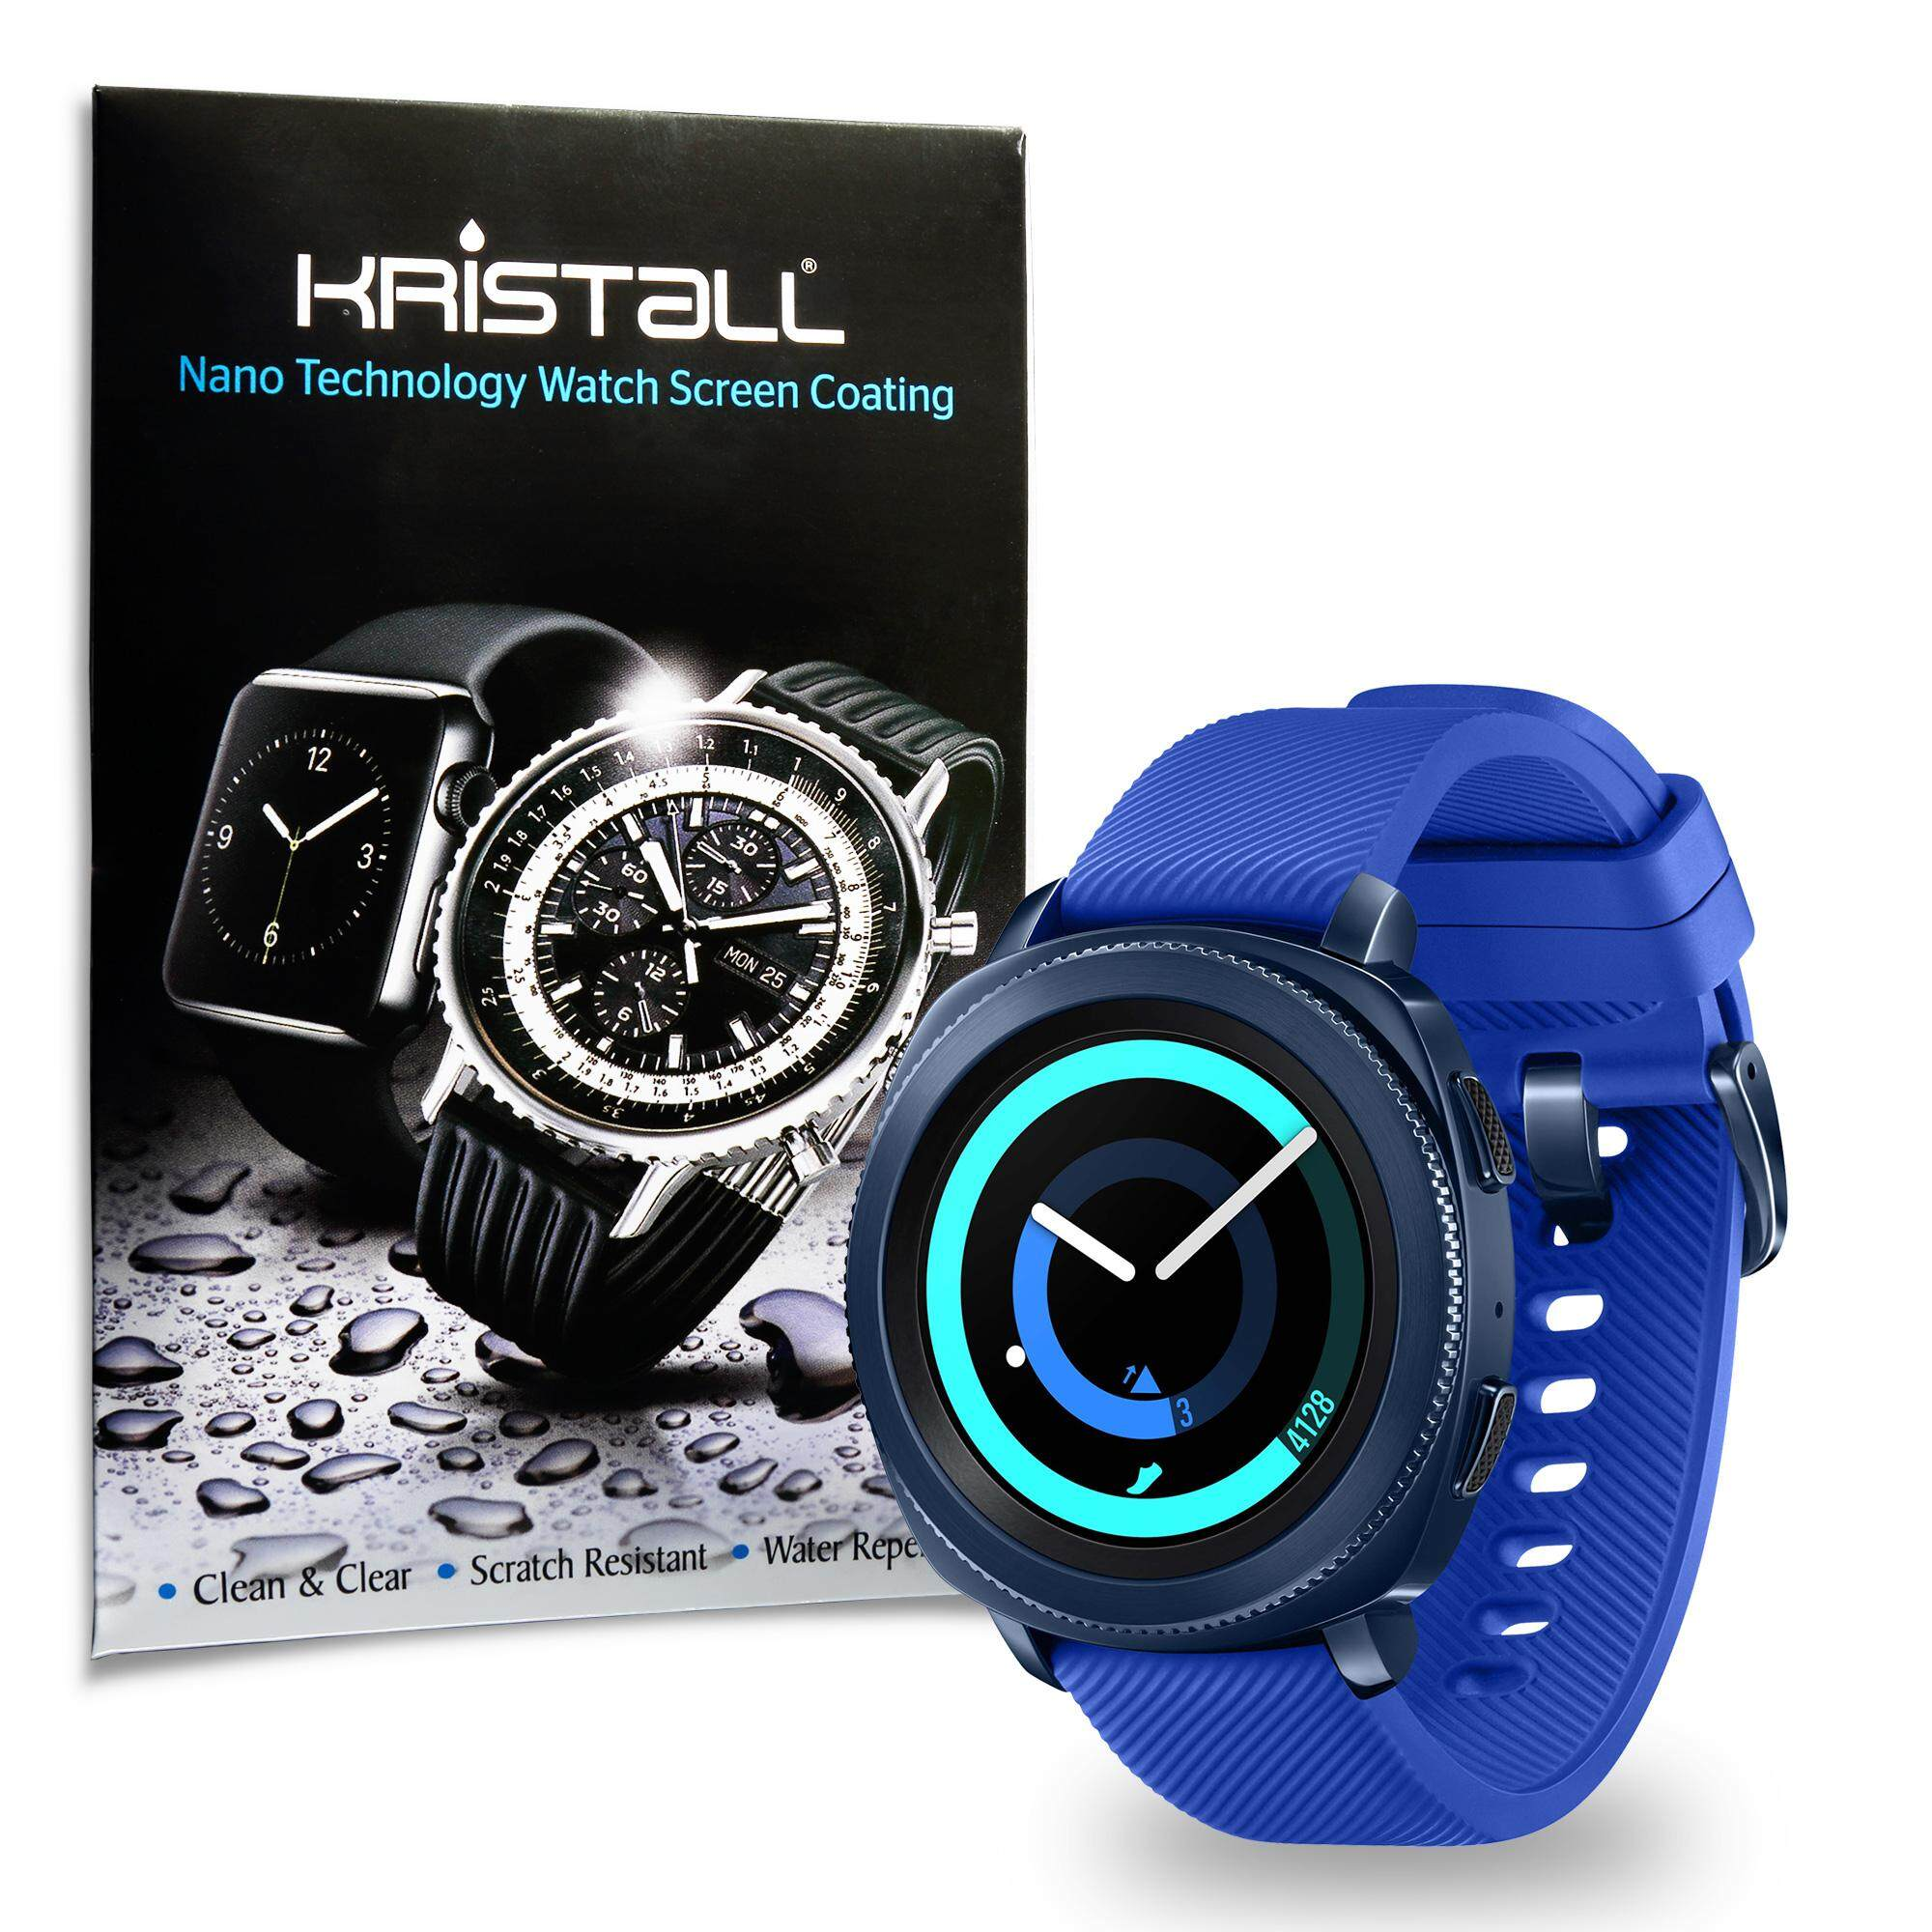 Samsung Gear Sport Screen Protector - Kristall® 9H Hardness Full Coverage Liquid Nano Coating Screen Protector for Smartwatches (Bubble-FREE Screen Protector, EASY to Apply, Edge-to-Edge Protection)